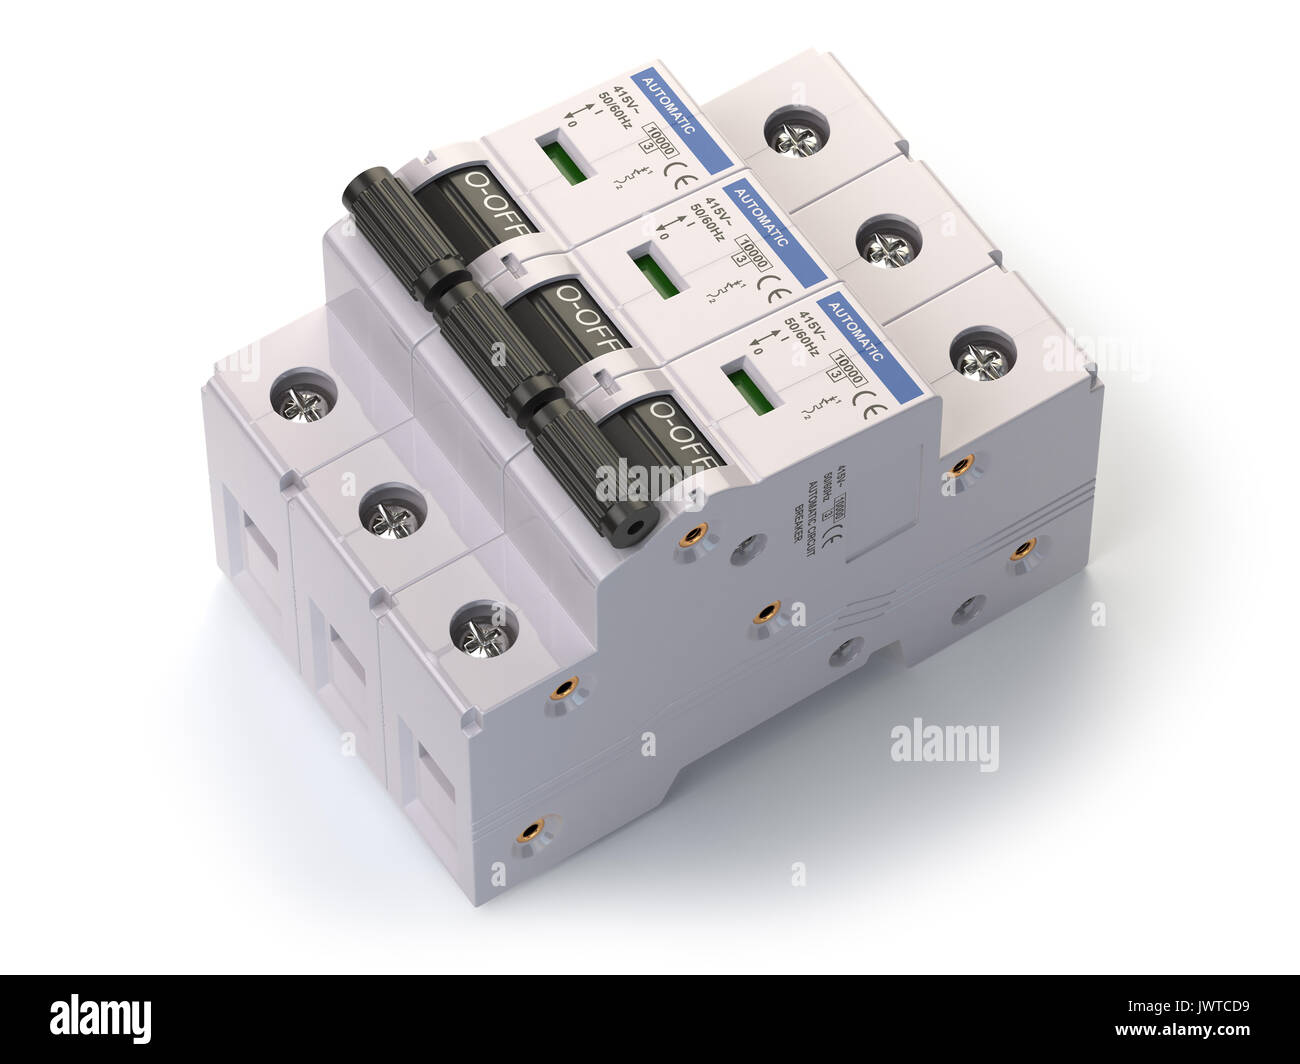 Circuit Breaker Isolated On White Background Vector Illustration 1988 Mercy 560sel Blower Motor Outside Fuse Box Diagram Automatic 3d Stock Rh Alamy Com